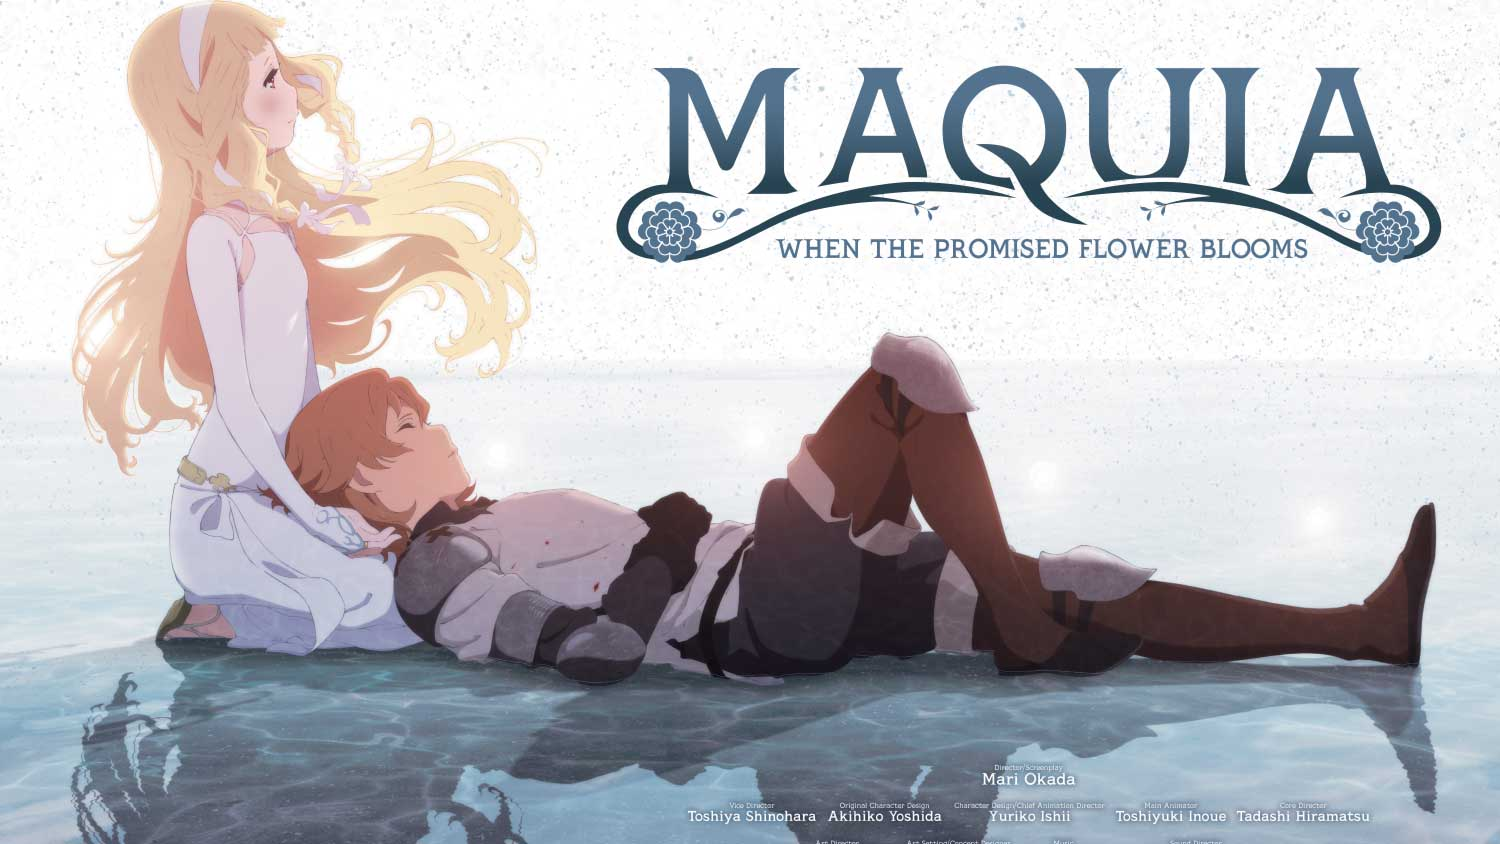 Maquia: When The Promised Flower Blooms Trailer - OC Movie Reviews - Movie Reviews, Movie News, Documentary Reviews, Short Films, Short Film Reviews, Trailers, Movie Trailers, Interviews, film reviews, film news, hollywood, indie films, documentaries